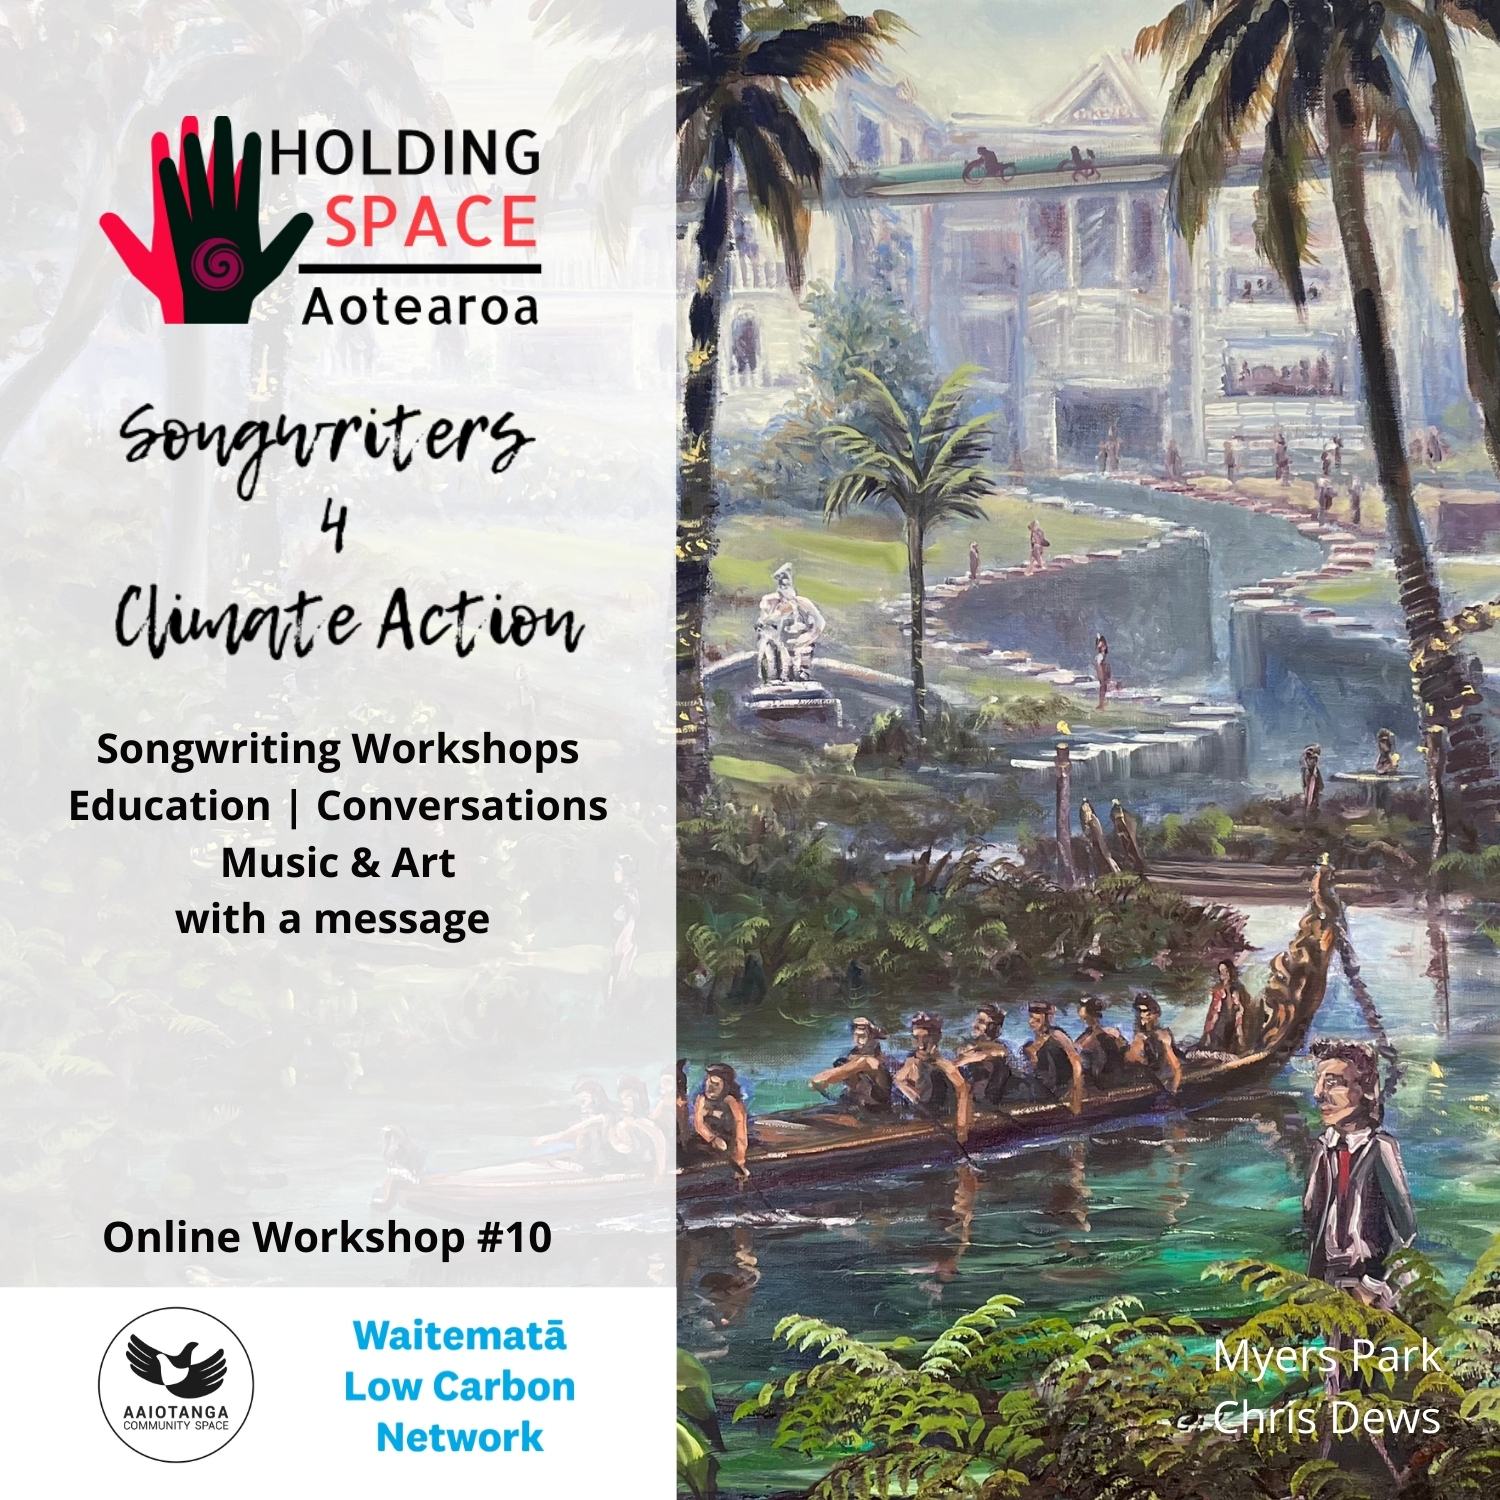 Songwriters 4 Climate Action workshop #10 with Aaiotanga